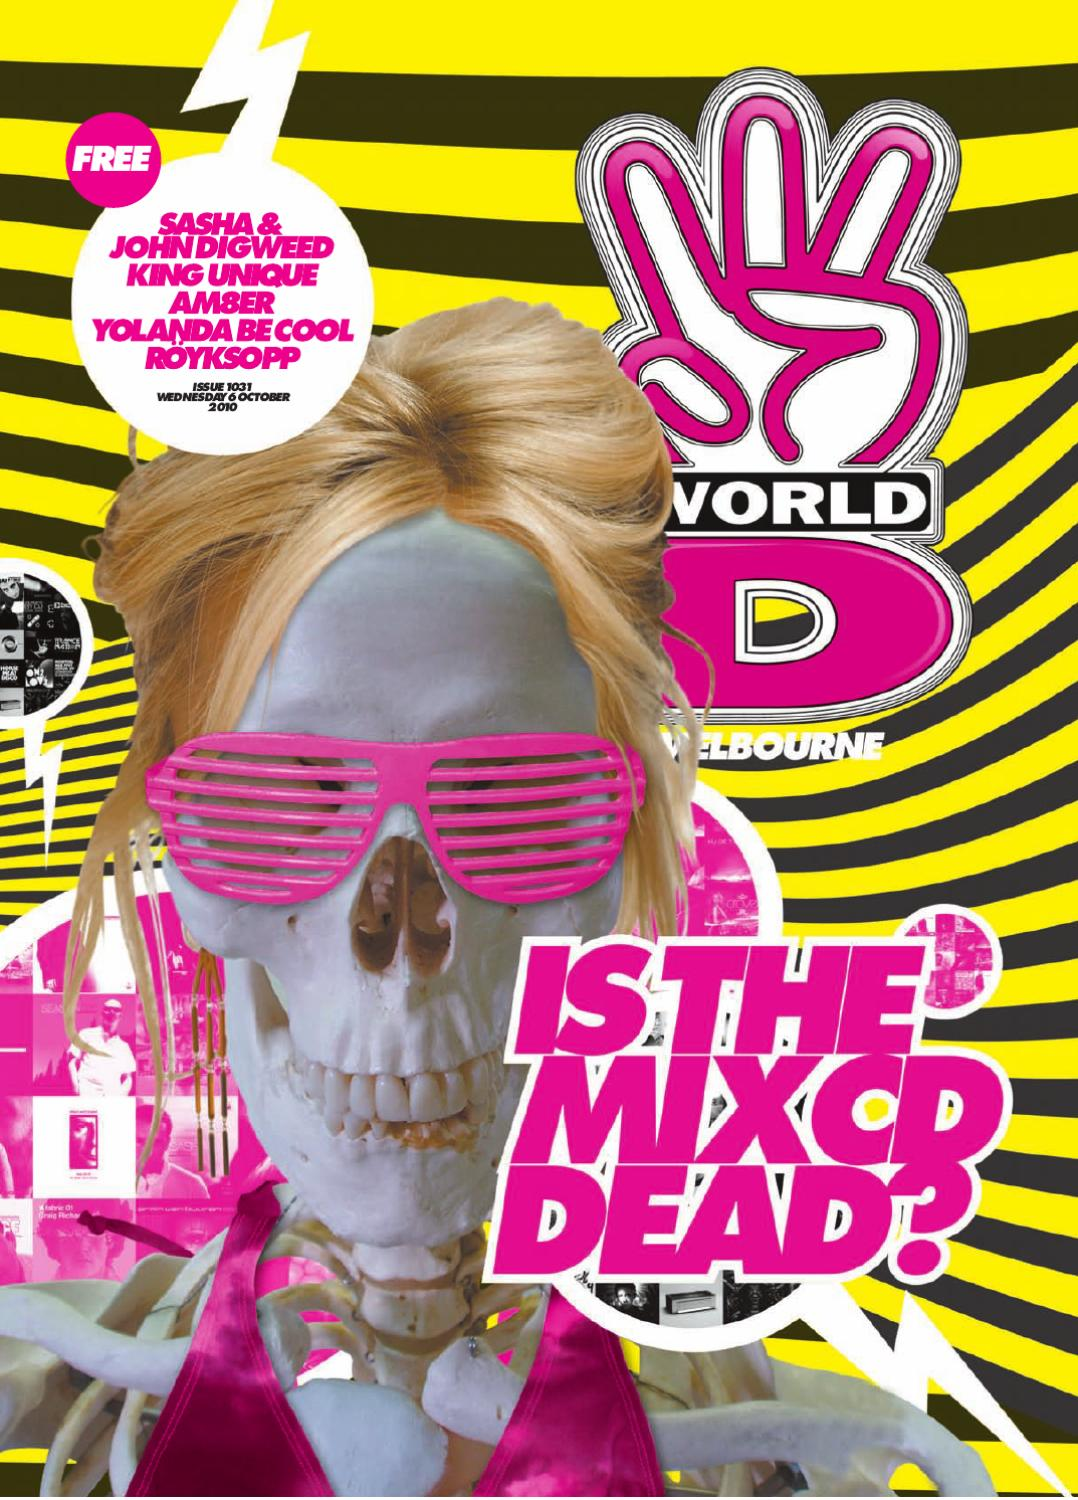 3D World - Melbourne Issue #1031